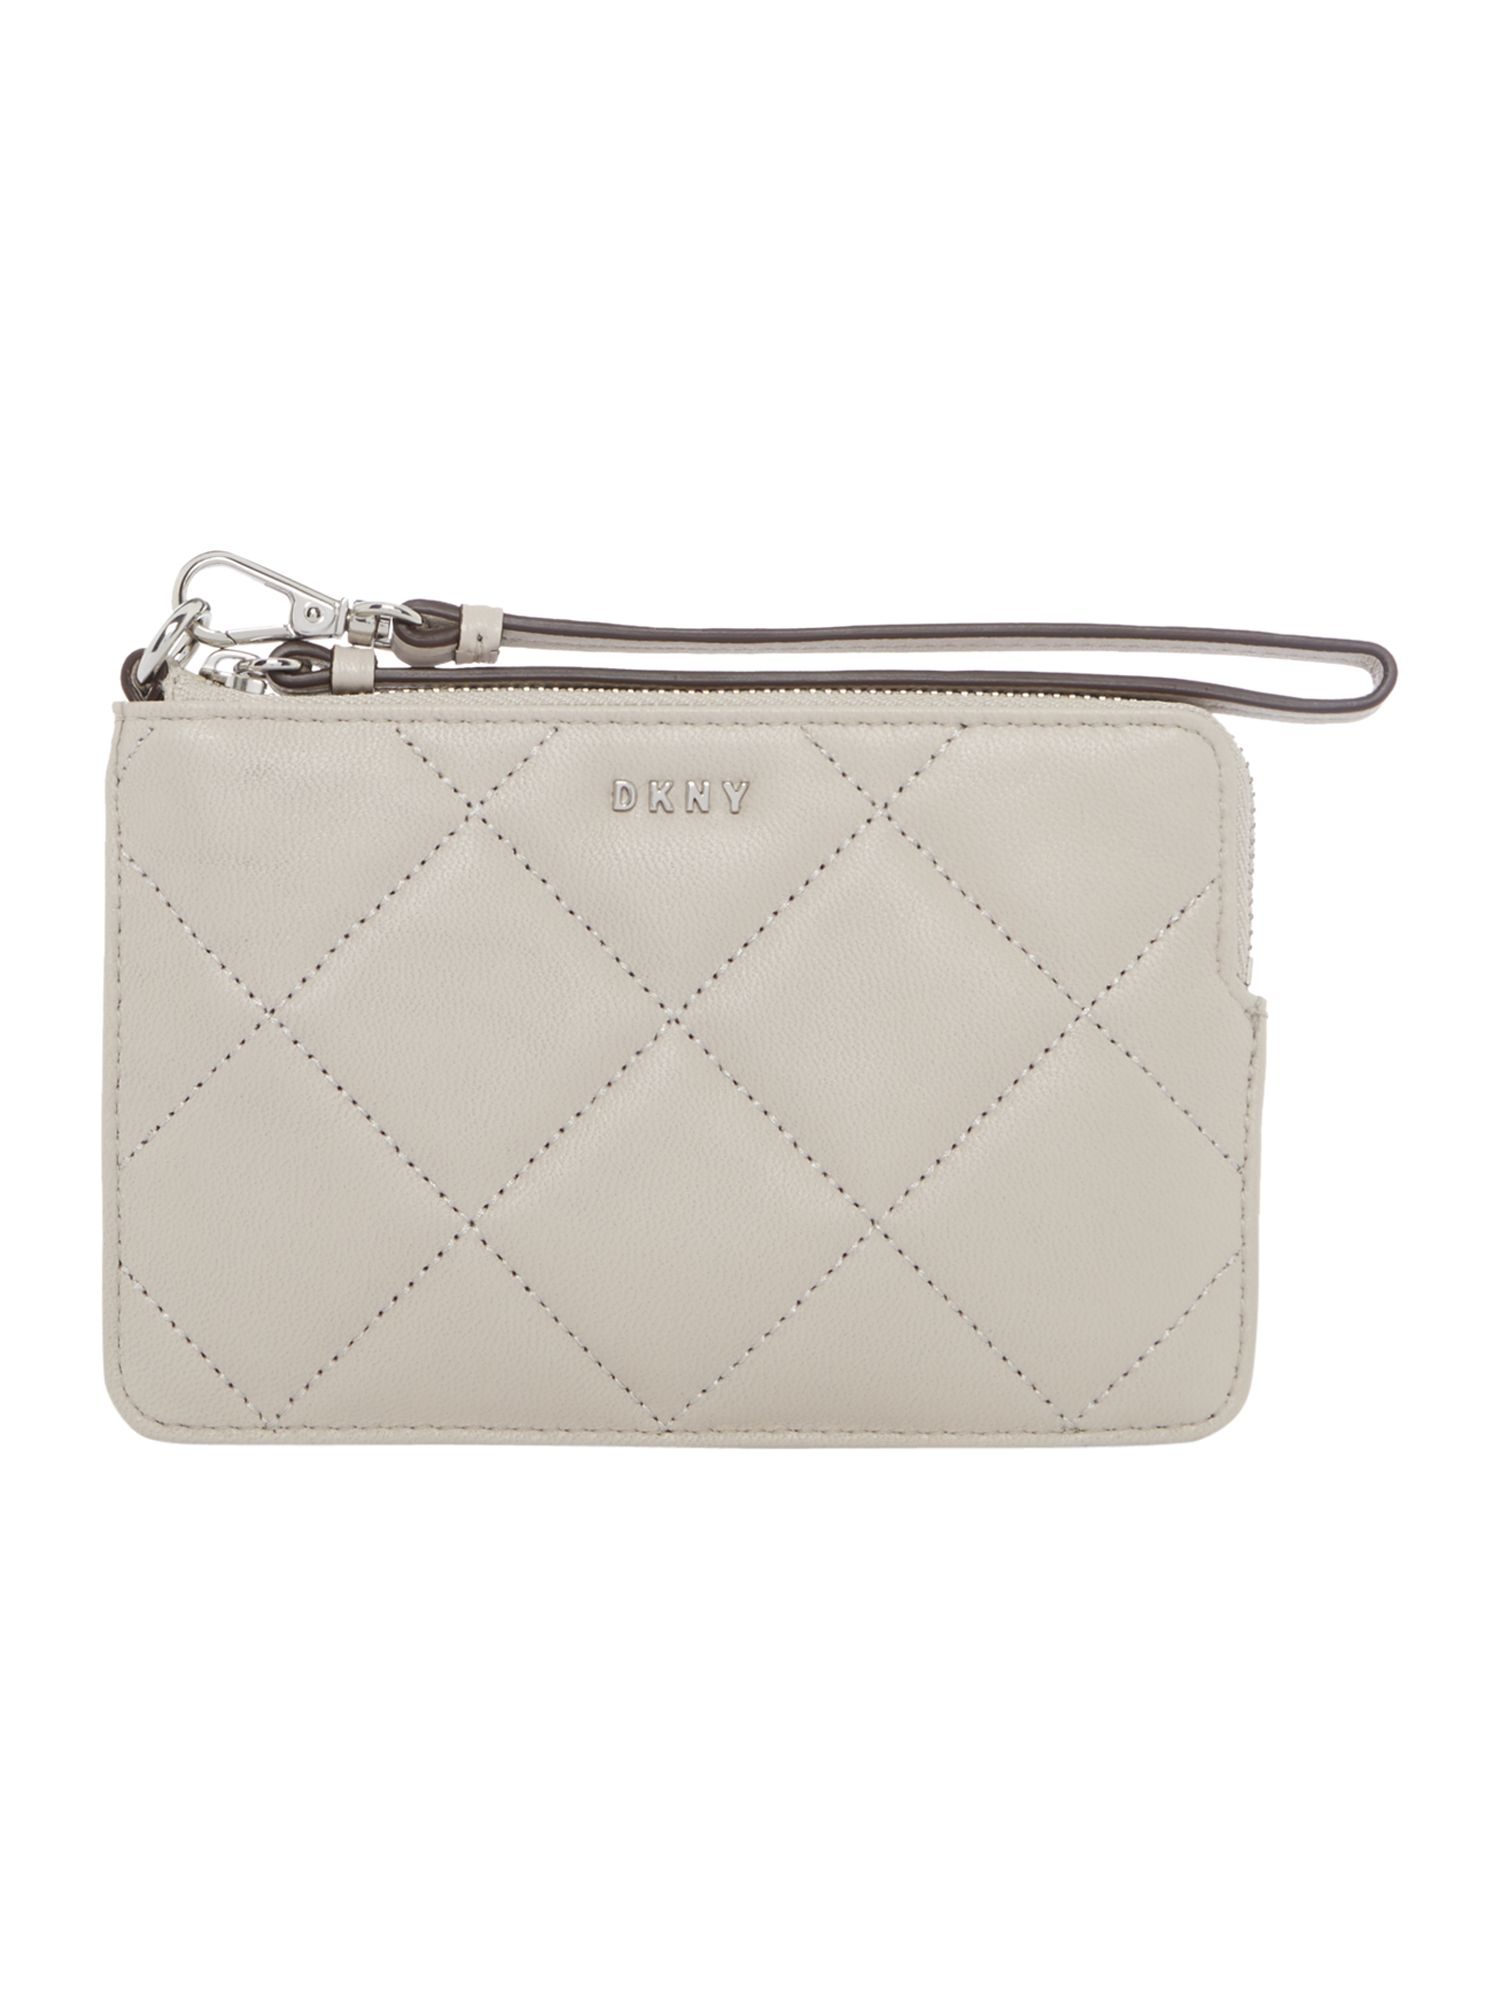 DKNY Barbara small zip around purse, Light Grey